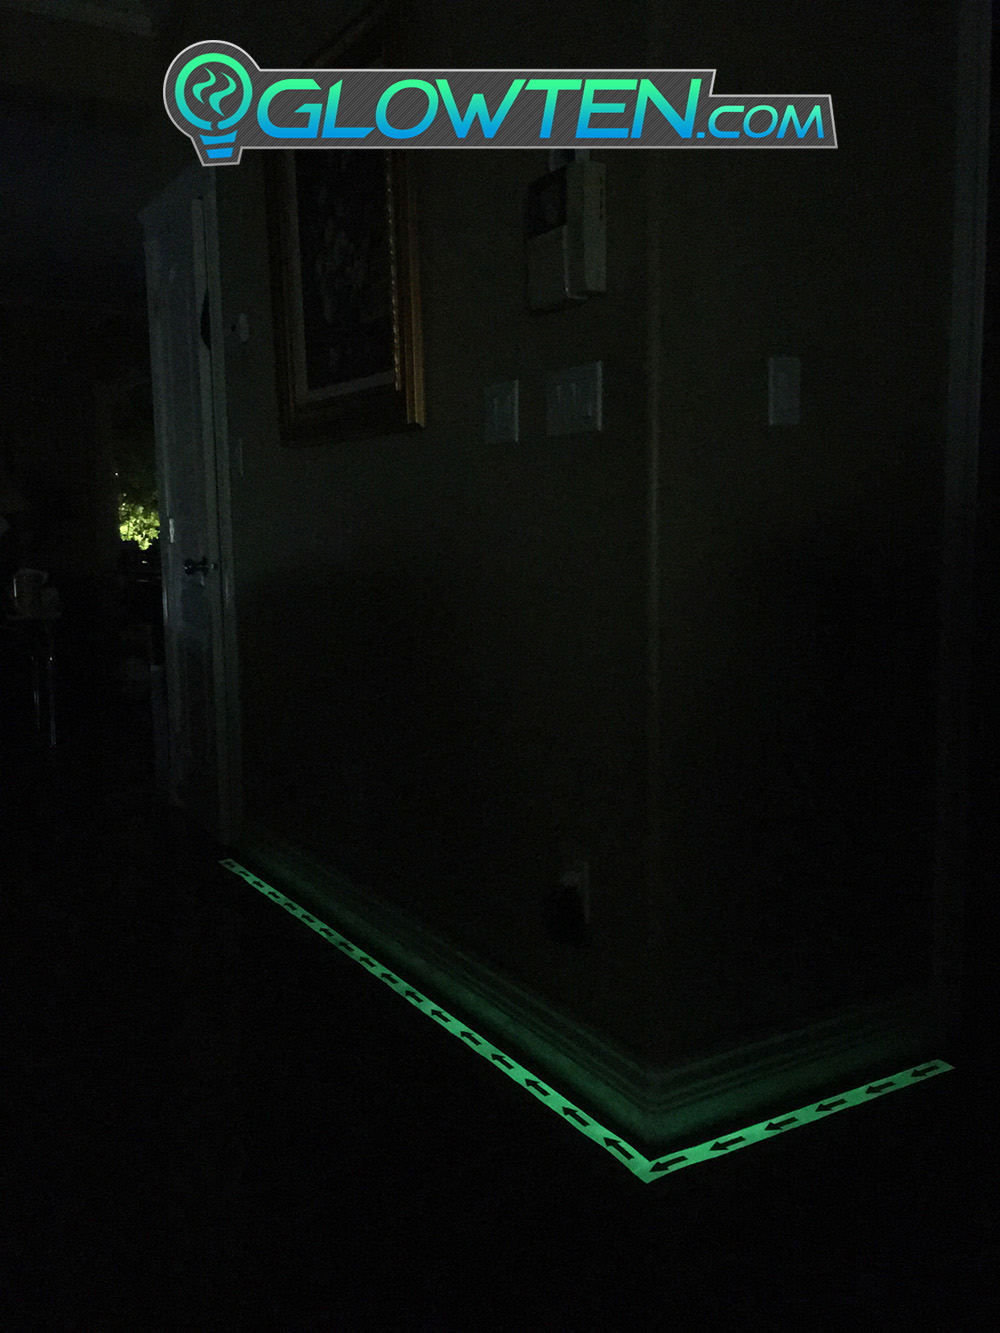 GLOWTEN.com - ARROW POINT TAPE Glow in the Dark Green Single Direction Sign All Purpose Tape Roll Lite Green Directional glow in the dark tape arrow pattern pic 5